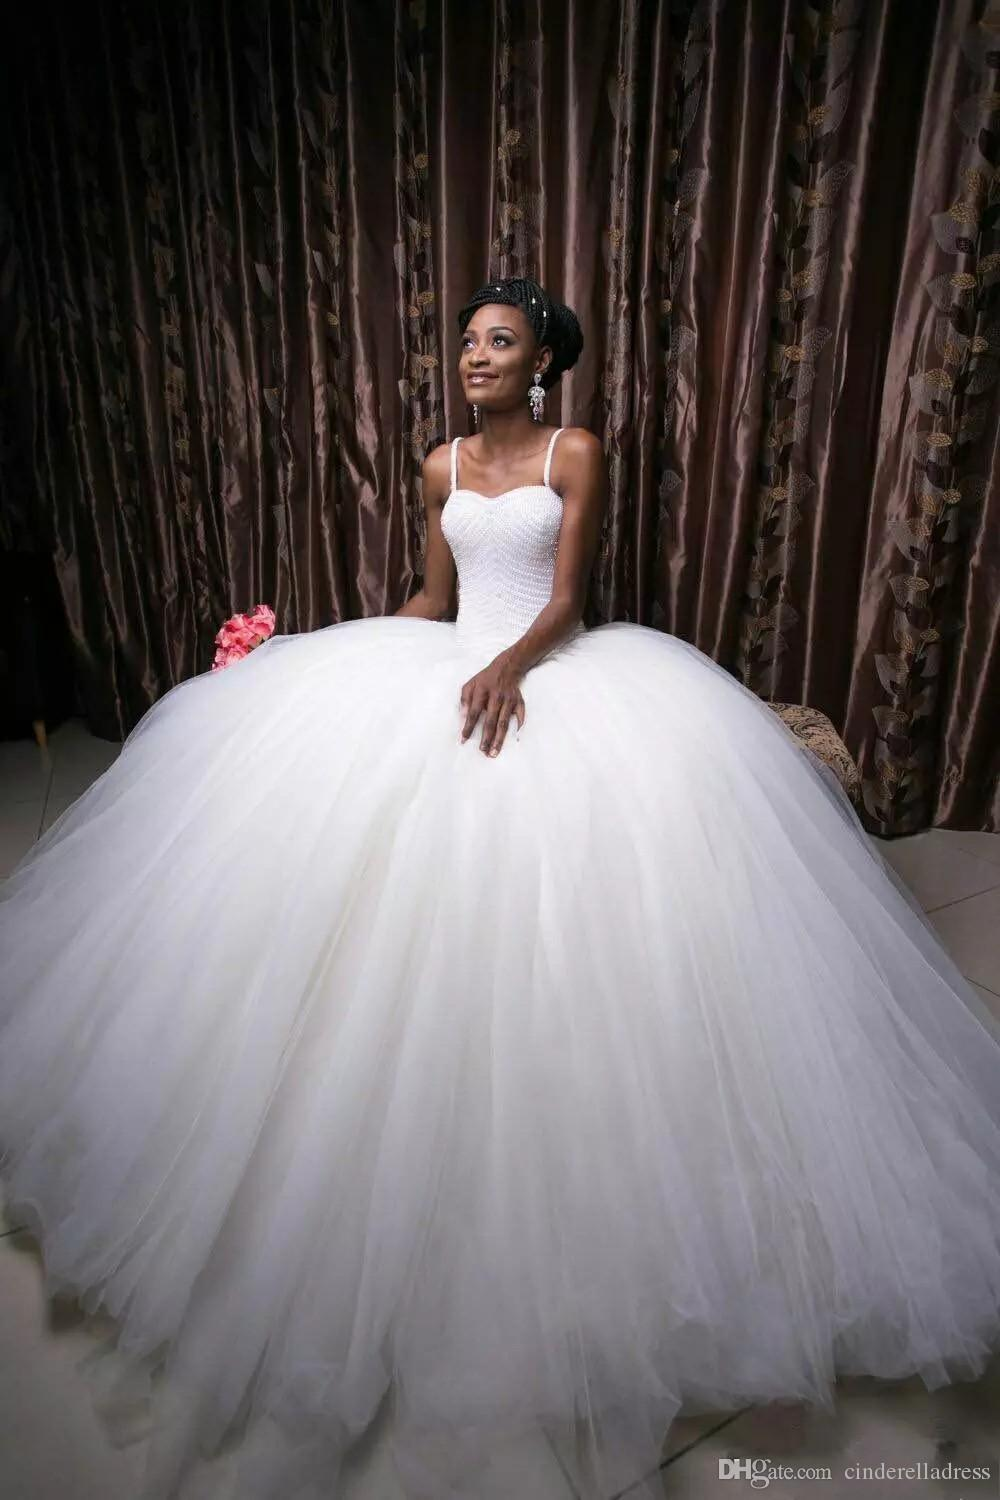 Super Ball Gown Tulle Wedding Dresses 2018 Middle East White Beading Top Layers Floor Length Spring Plus Size Bridal Wedding Gowns